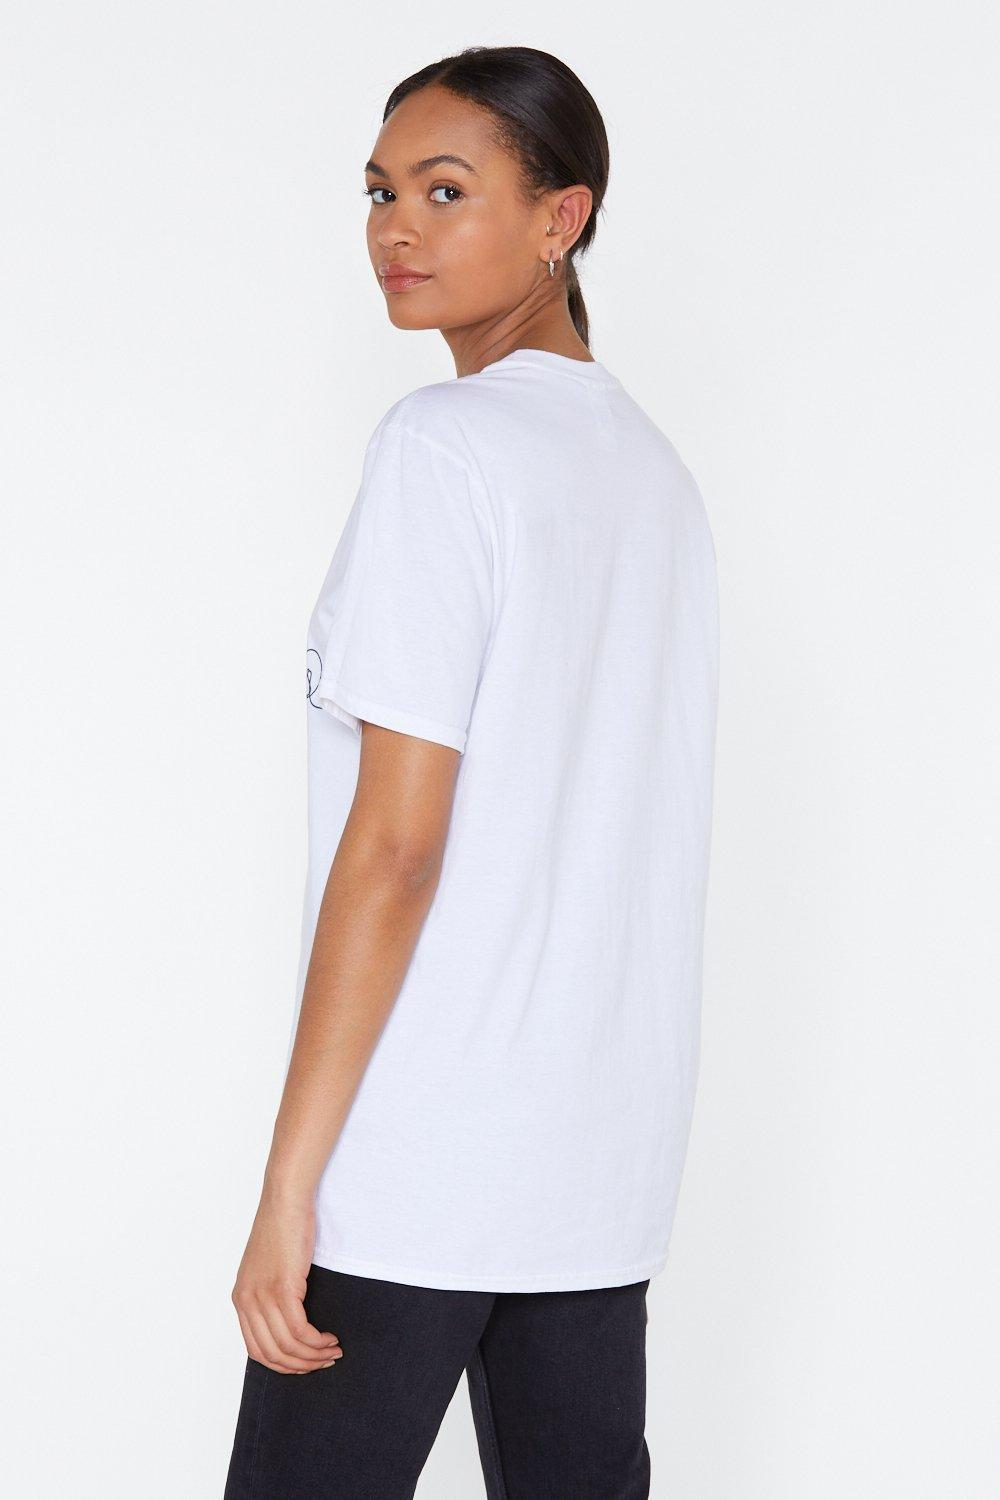 e5791aefd827 Take Me to Tokyo Skyline Graphic Tee   Shop Clothes at Nasty Gal!